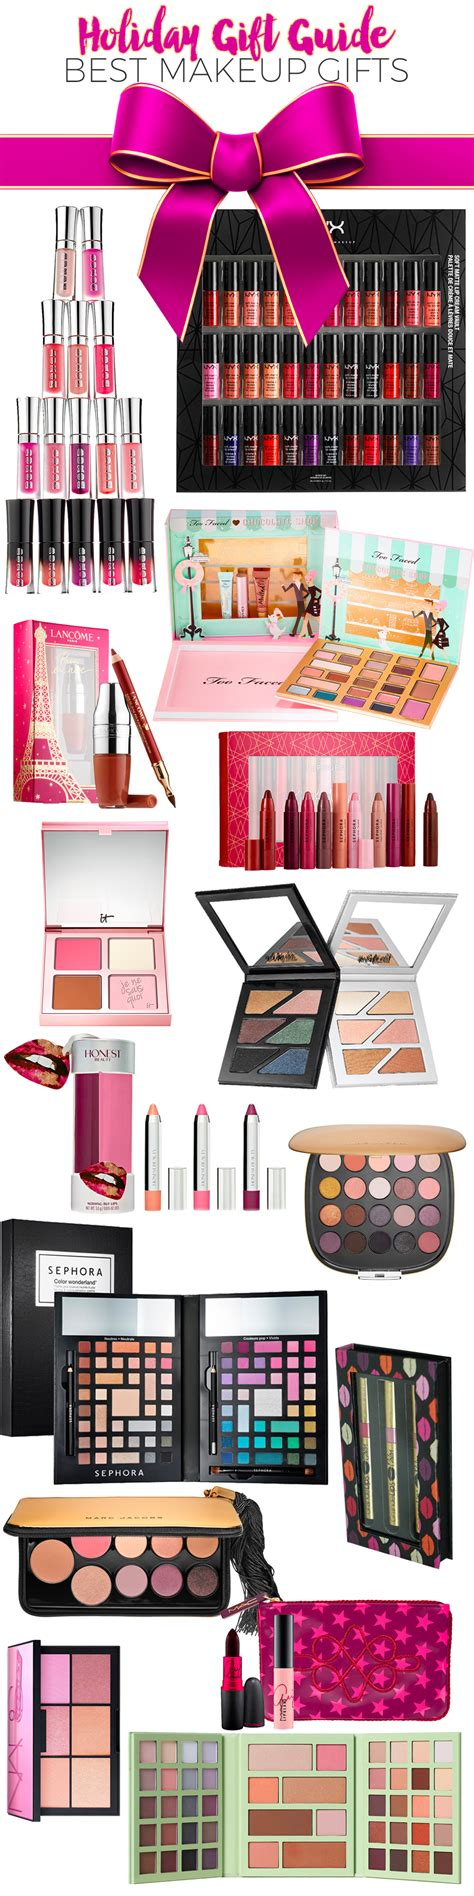 holiday gift guide 2016 best makeup gifts beautiful